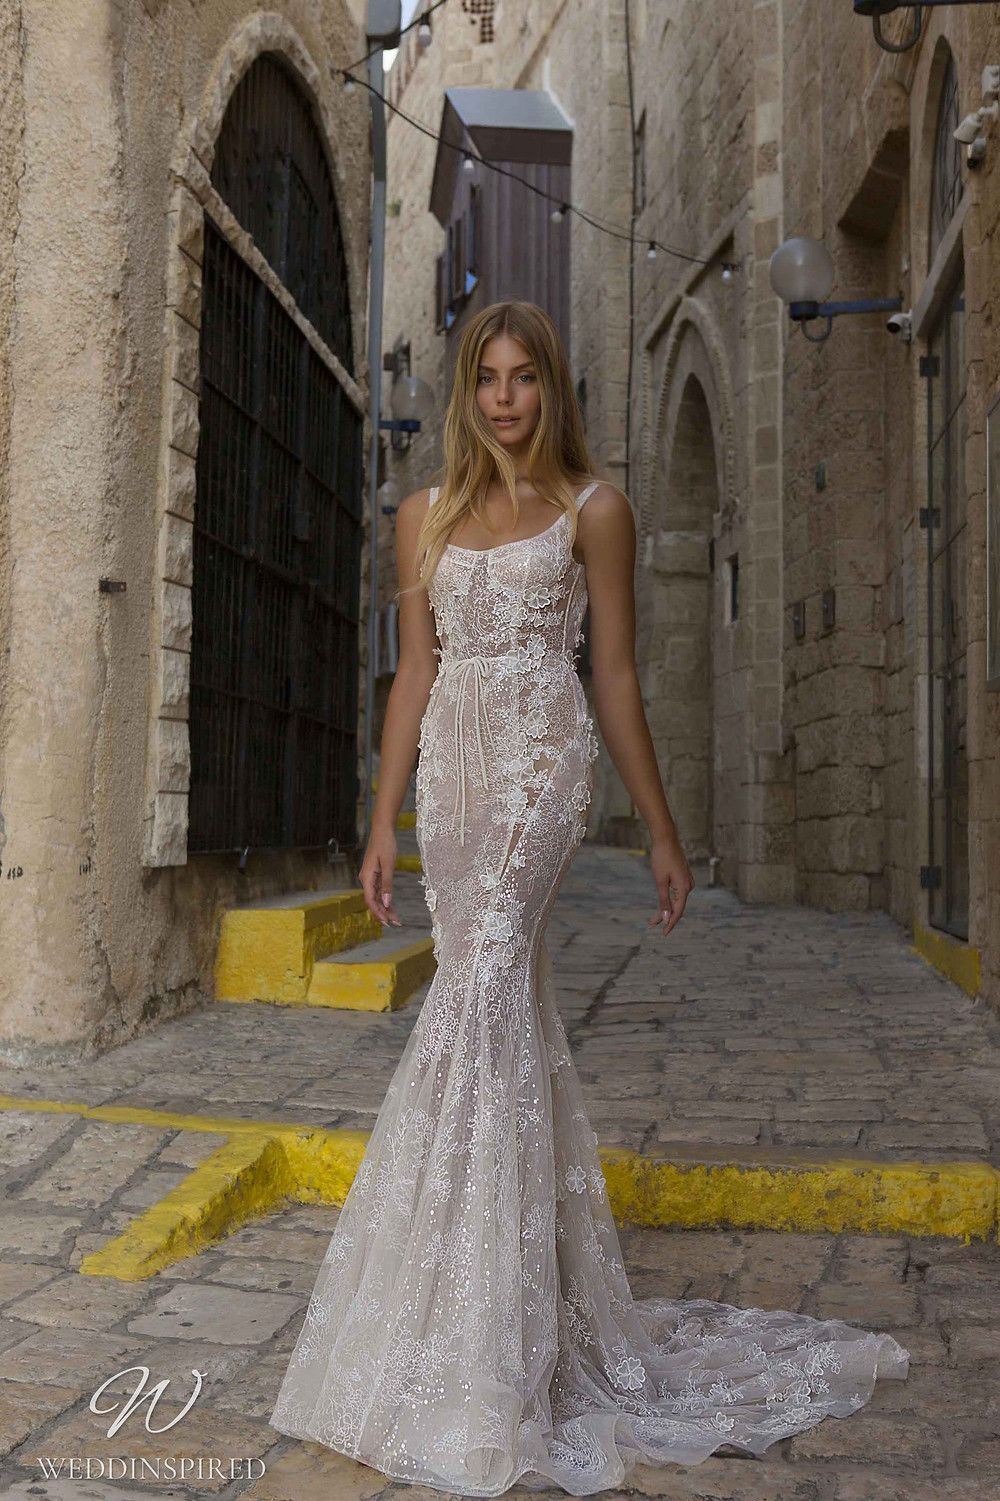 A Berta Priveé No 5 2021 nude sparkly lace mermaid wedding dress with straps